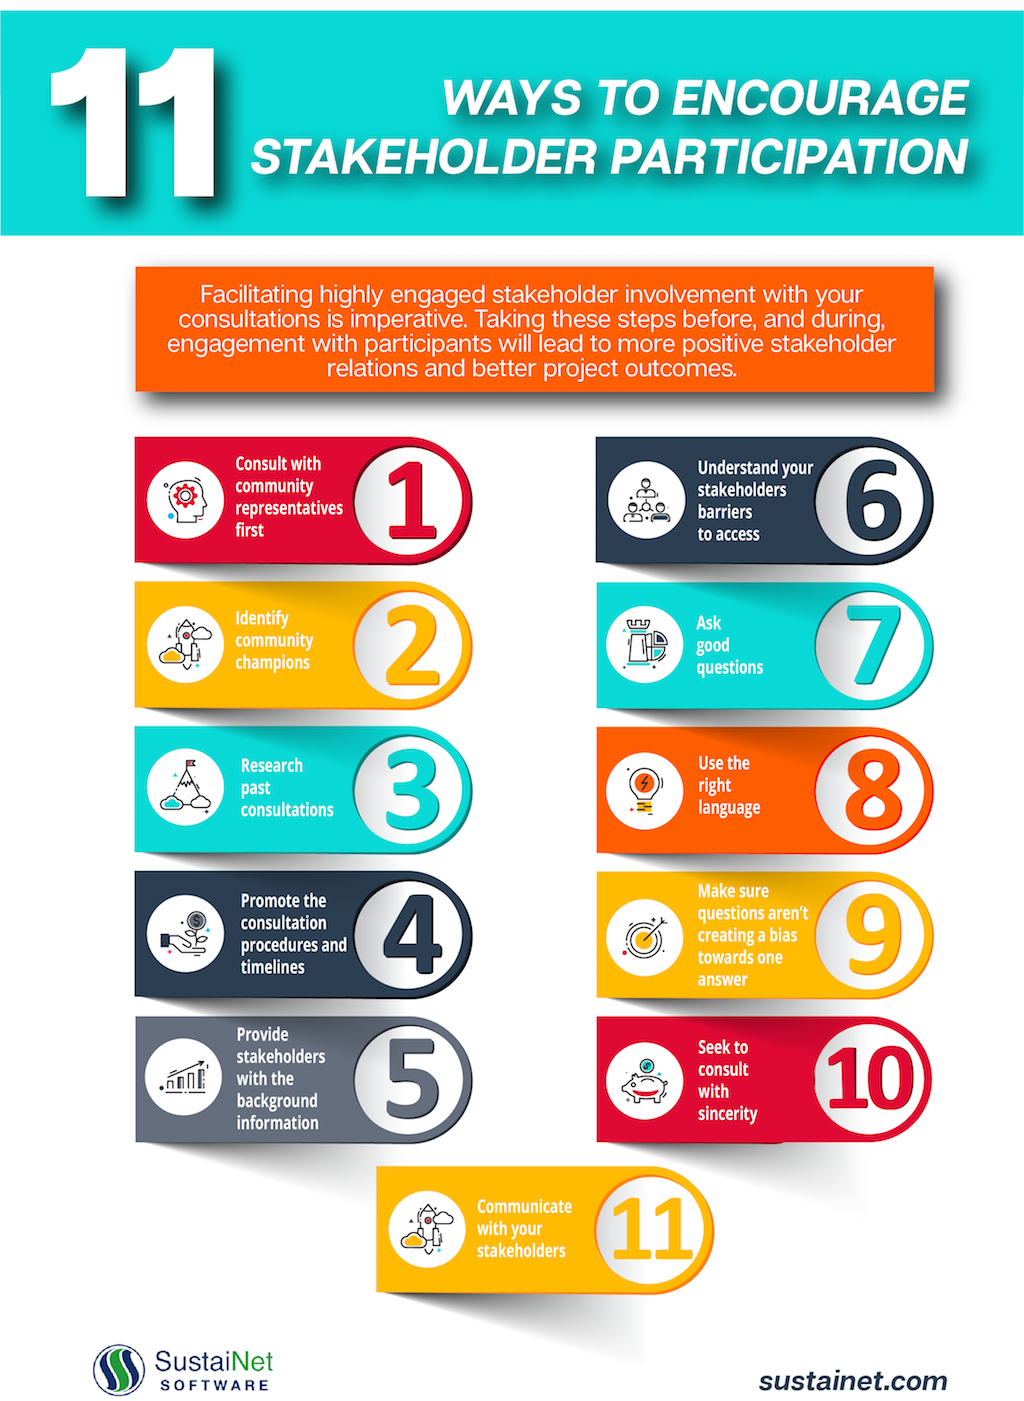 How to Encourage Stakeholder Participation Infographic